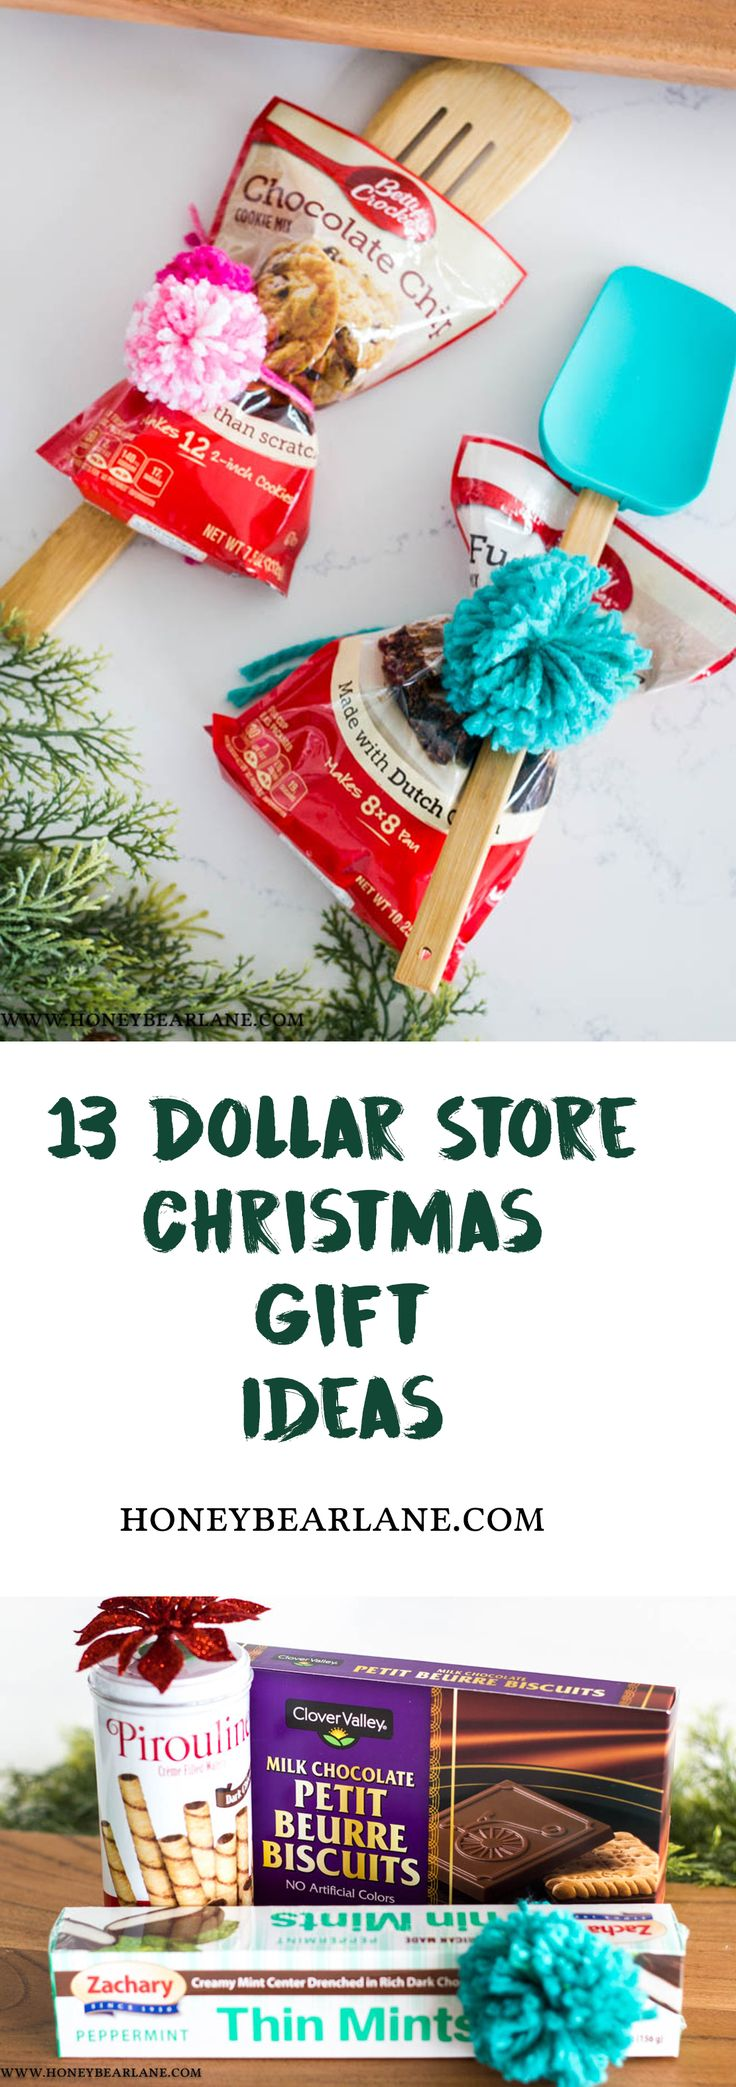 13 Dollar Store Gift Ideas for Christmas